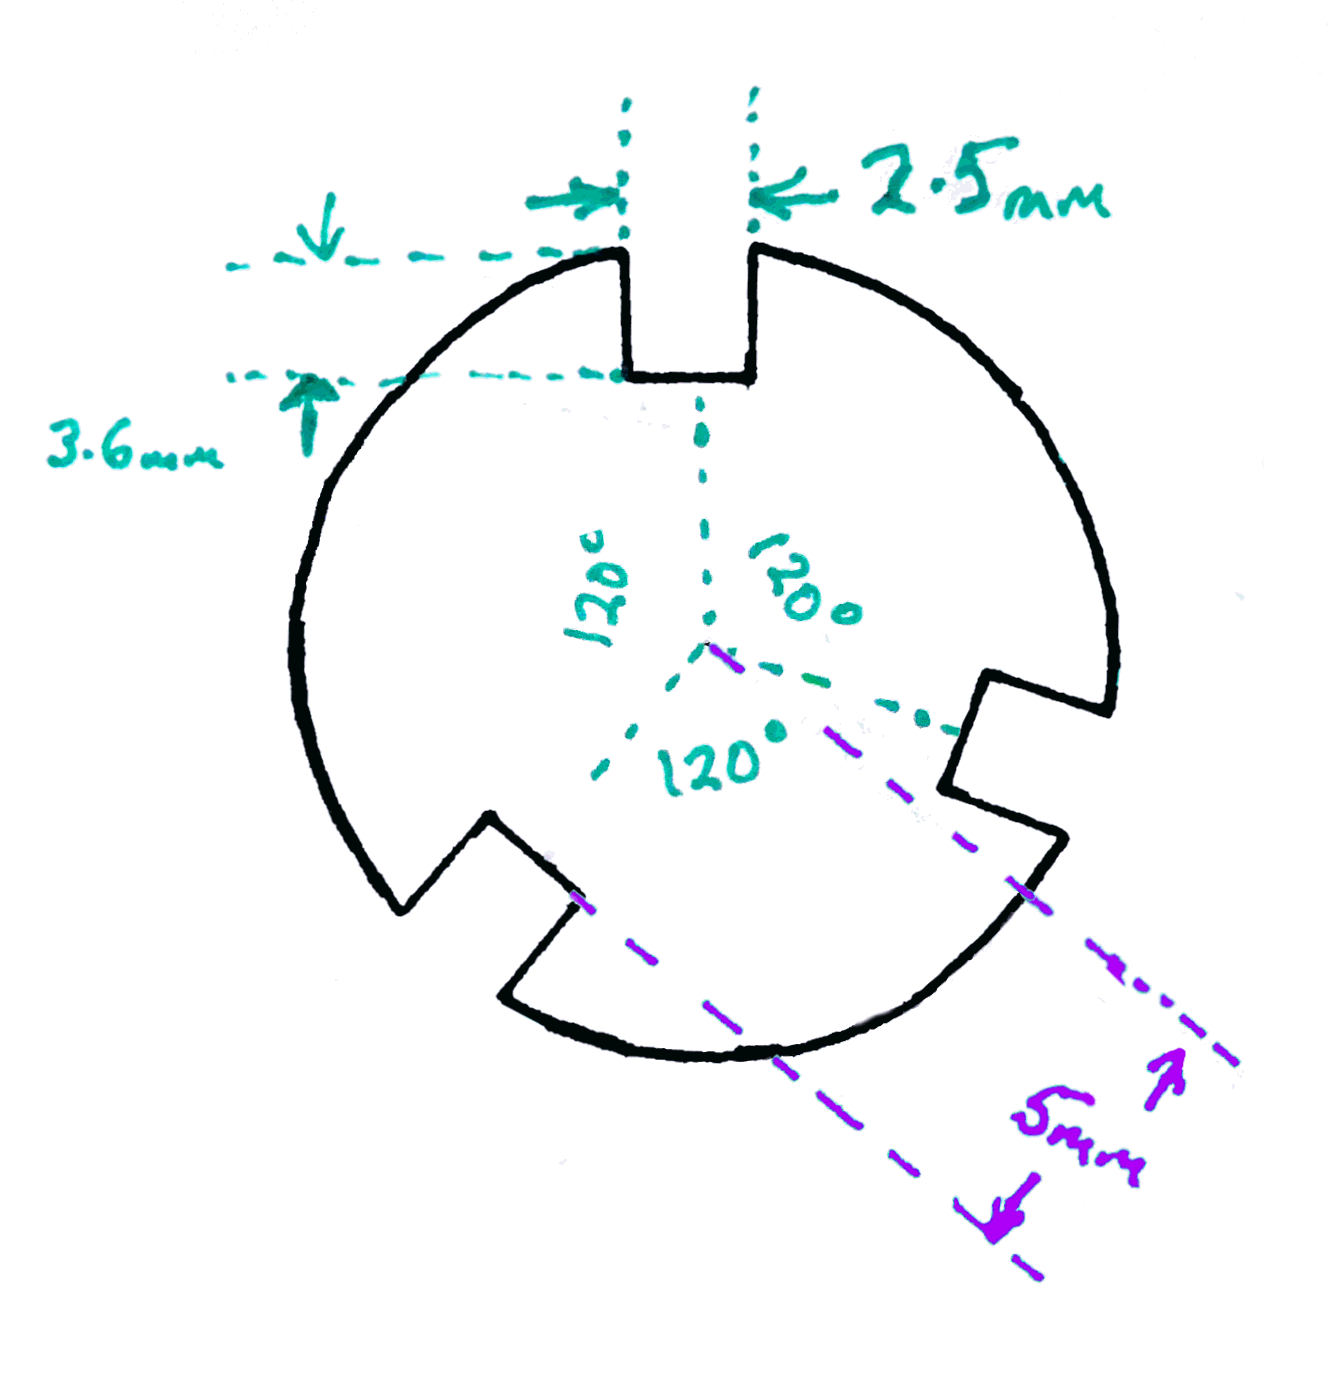 Argent Wind Speed And Direction Rainfall Sensors For Hobbyists Here S A Simple Rain Detector Circuit It Uses Sensor Made Of Small Think Hard About How You Want To Mount The Both What Will Posts Be Support Then Double Whatever